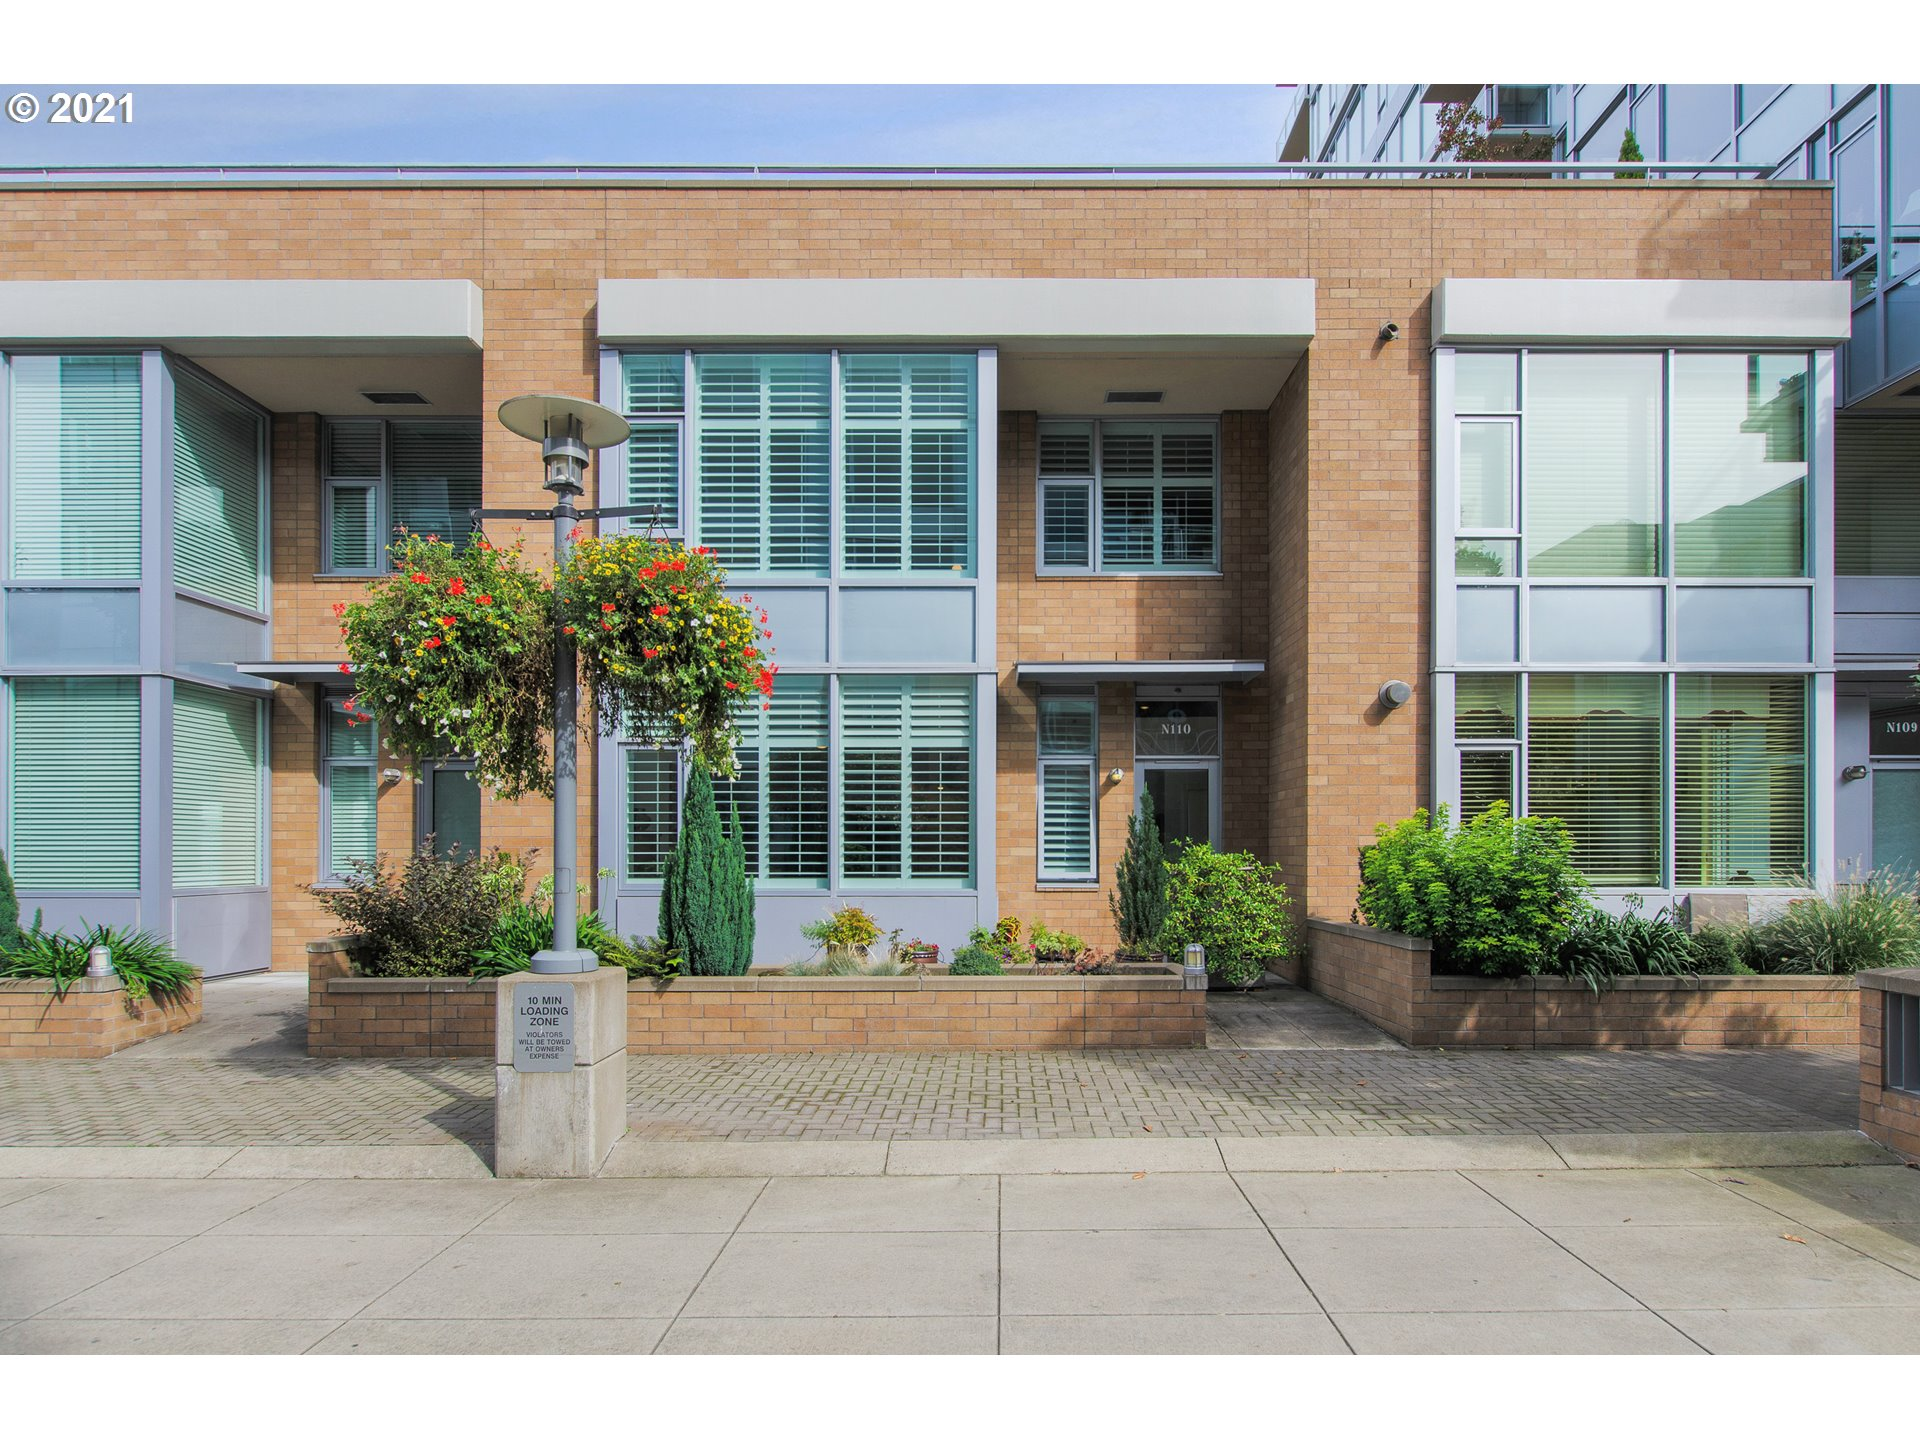 1900 S RIVER DR N110, Portland OR 97201